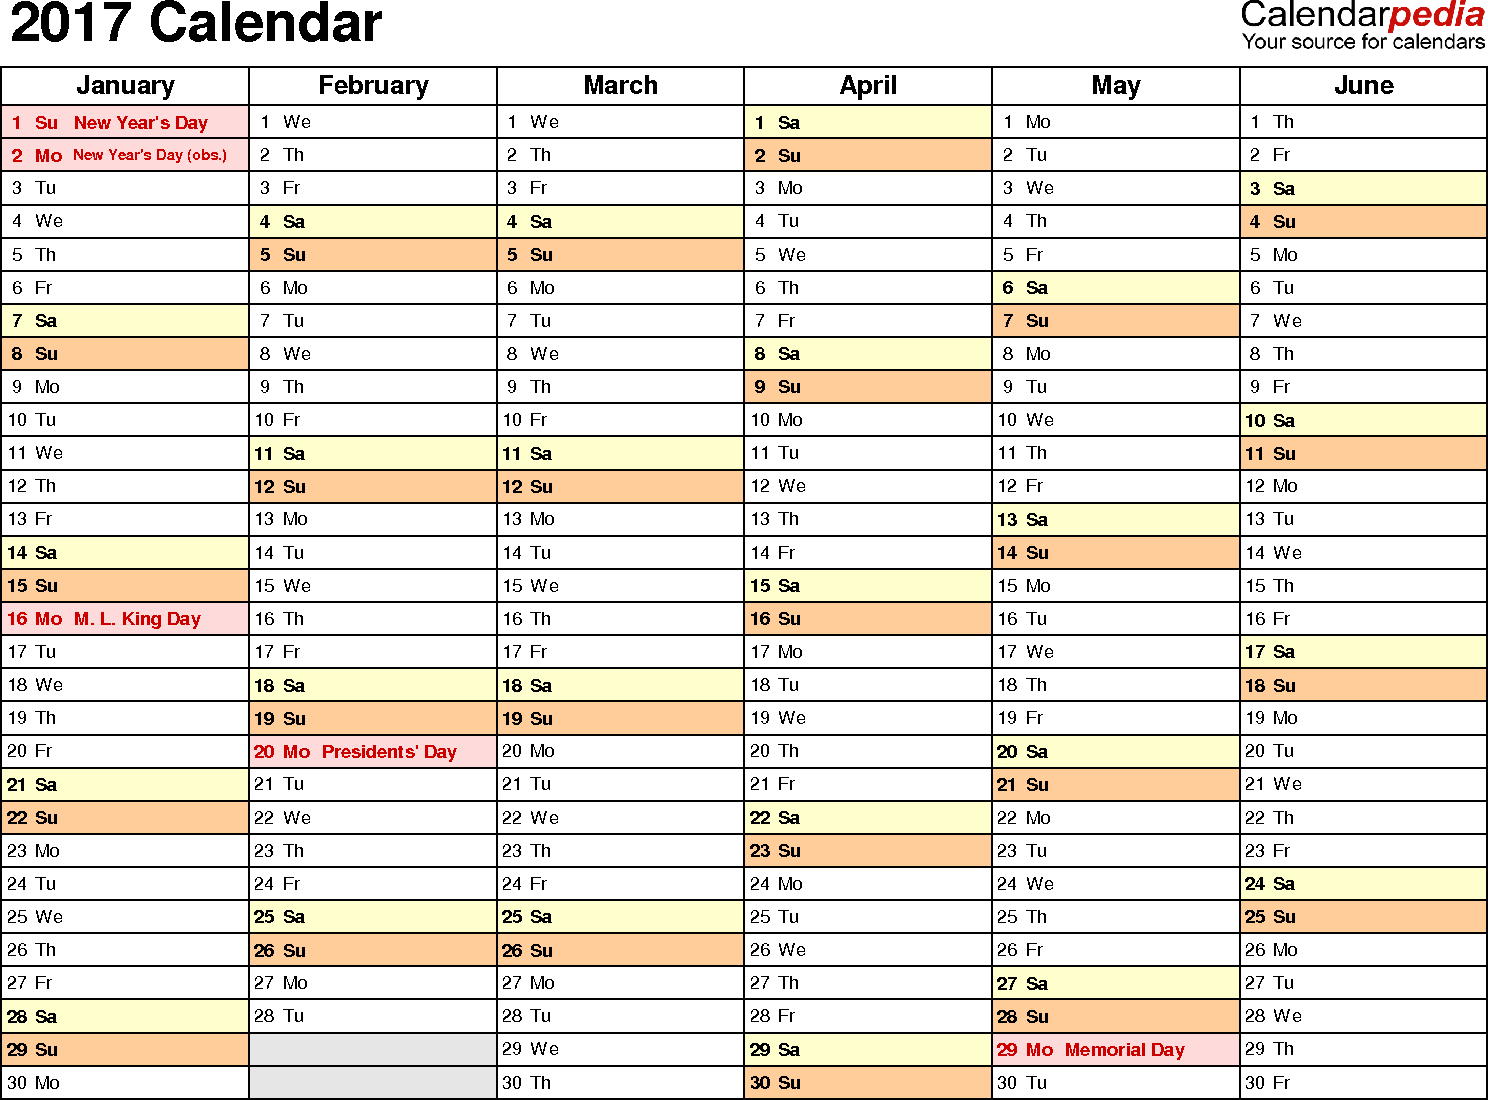 Ediblewildsus  Gorgeous  Calendar  Download  Free Printable Excel Templates Xls With Likable Template   Calendar For Excel Months Horizontally  Pages Landscape Orientation With Astounding Page Number Excel Also How To Change The Width Of A Column In Excel In Addition Java Excel Api And Excel Academy Public Charter School As Well As Add Dropdown To Excel Additionally Slicer In Excel From Calendarpediacom With Ediblewildsus  Likable  Calendar  Download  Free Printable Excel Templates Xls With Astounding Template   Calendar For Excel Months Horizontally  Pages Landscape Orientation And Gorgeous Page Number Excel Also How To Change The Width Of A Column In Excel In Addition Java Excel Api From Calendarpediacom